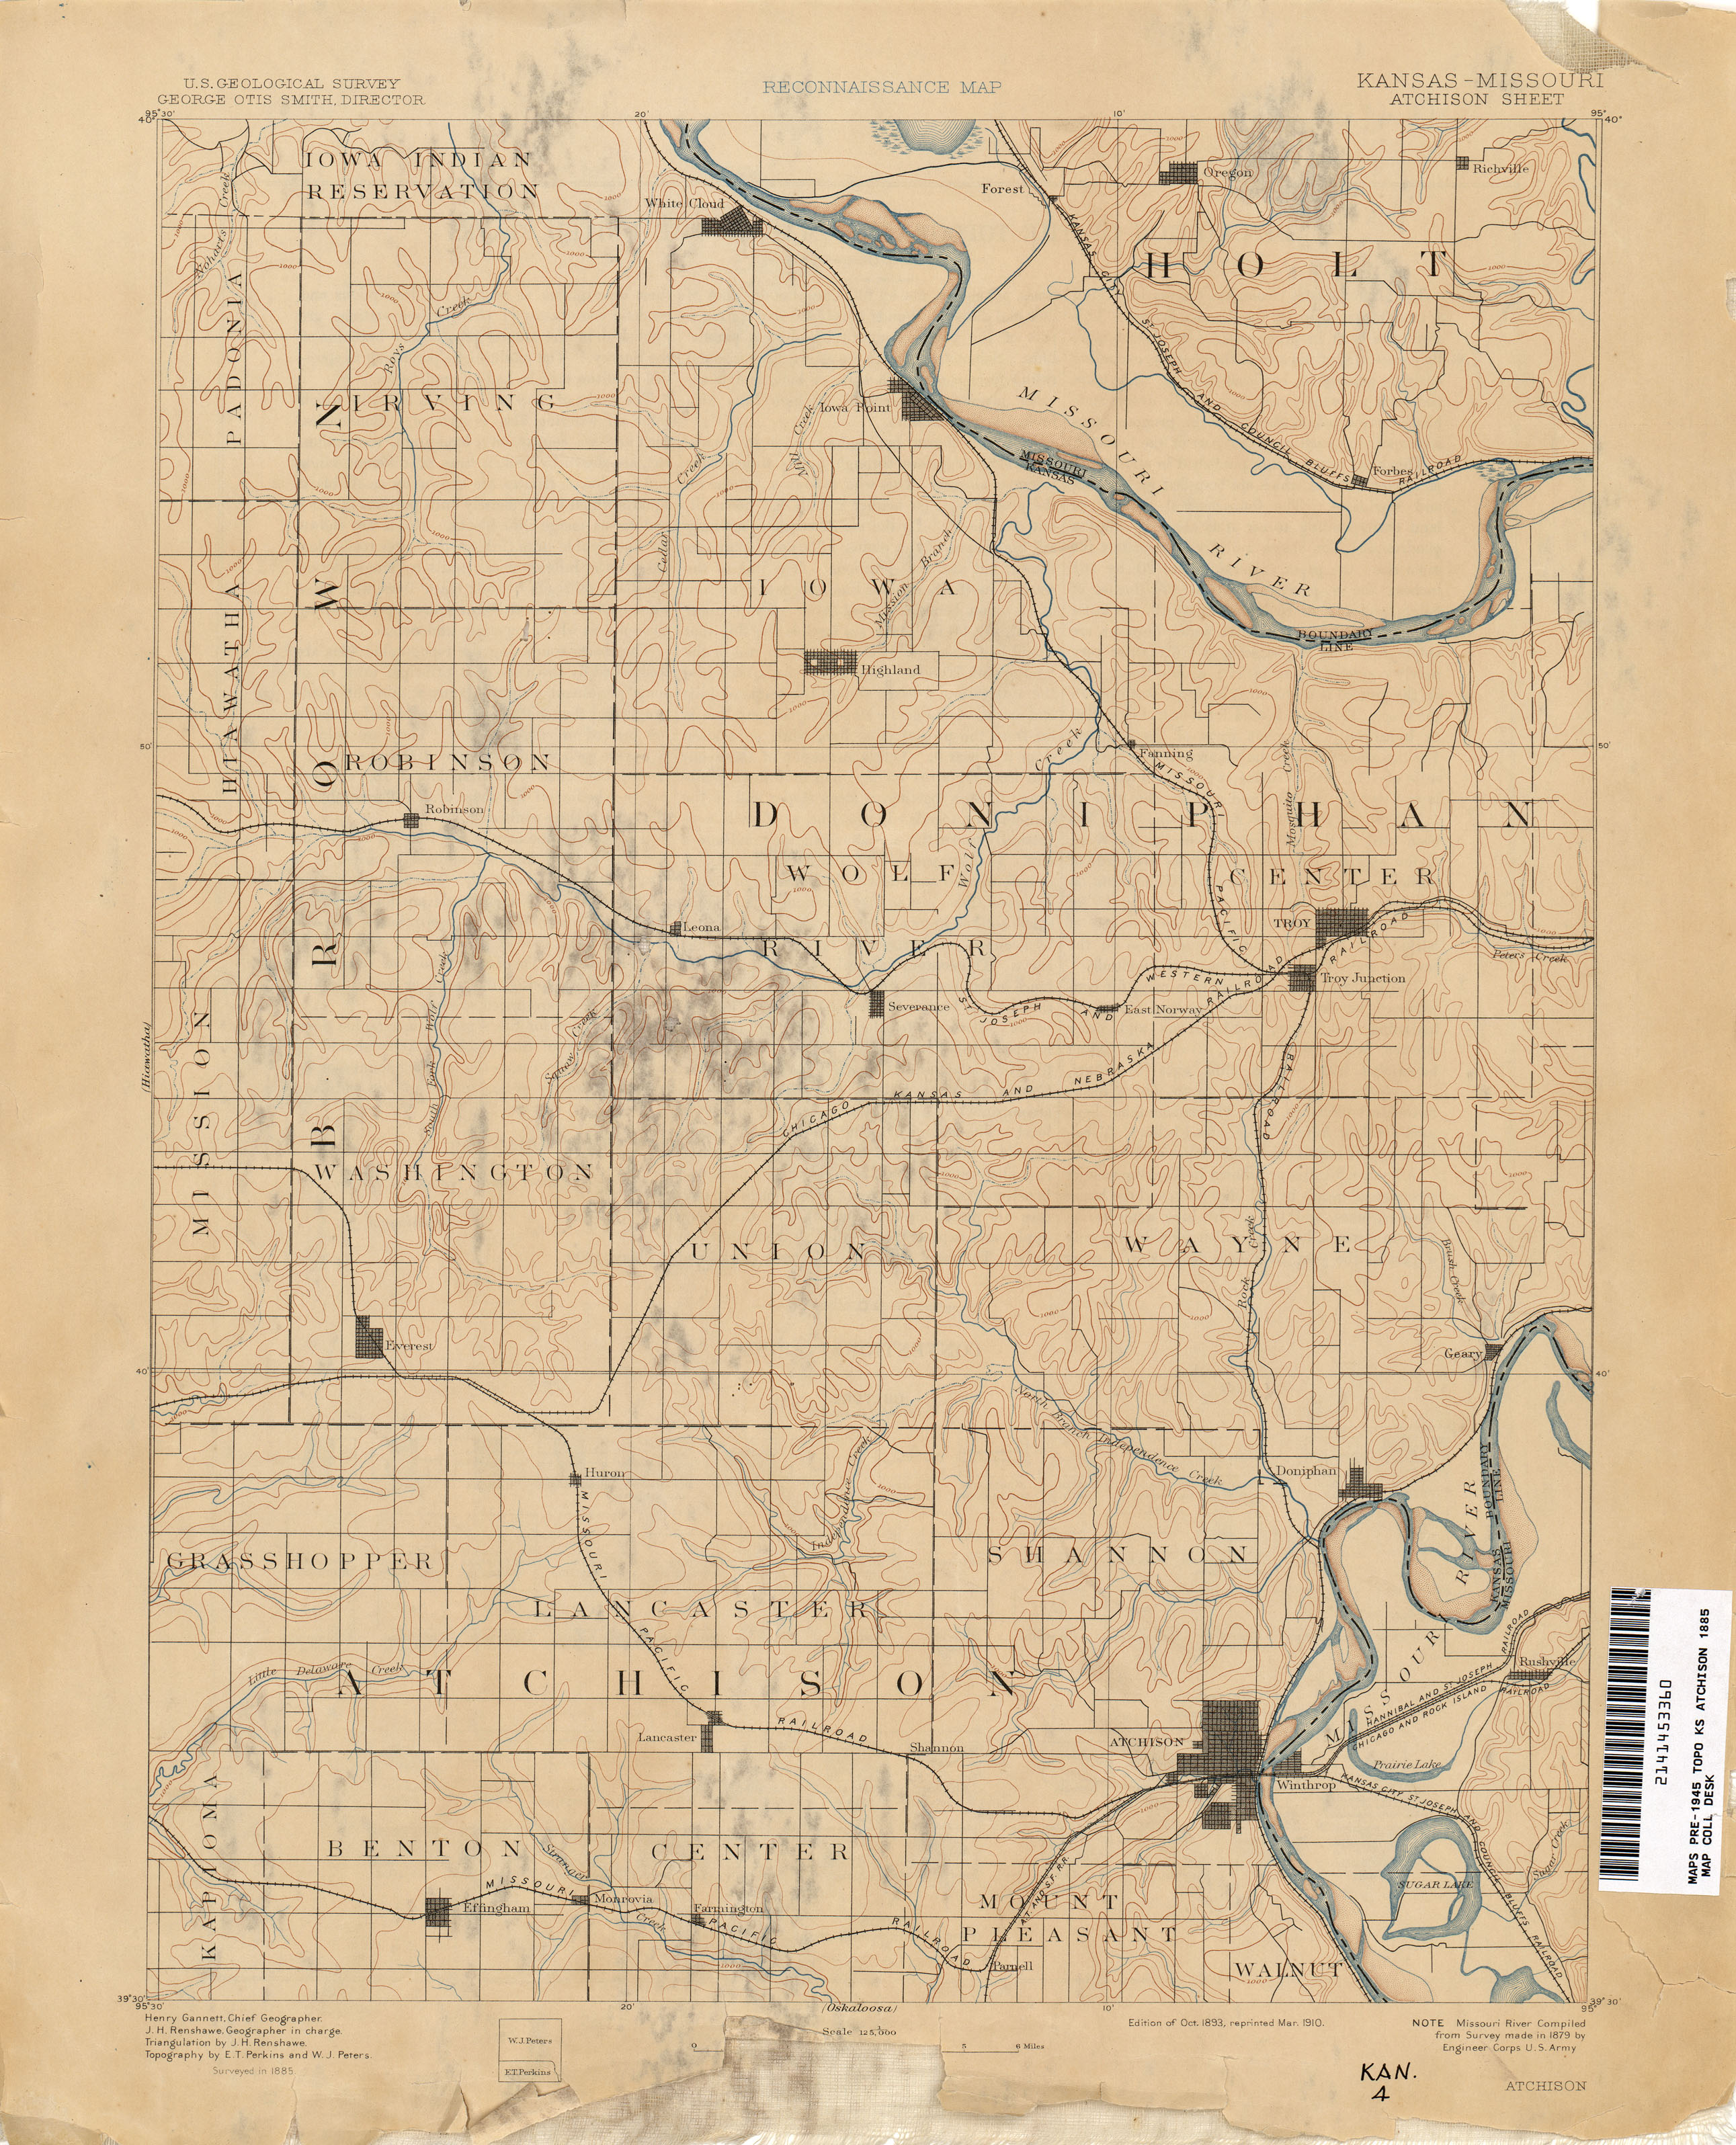 Kansas Historical Topographic Maps - Perry-Castañeda Map Collection ...